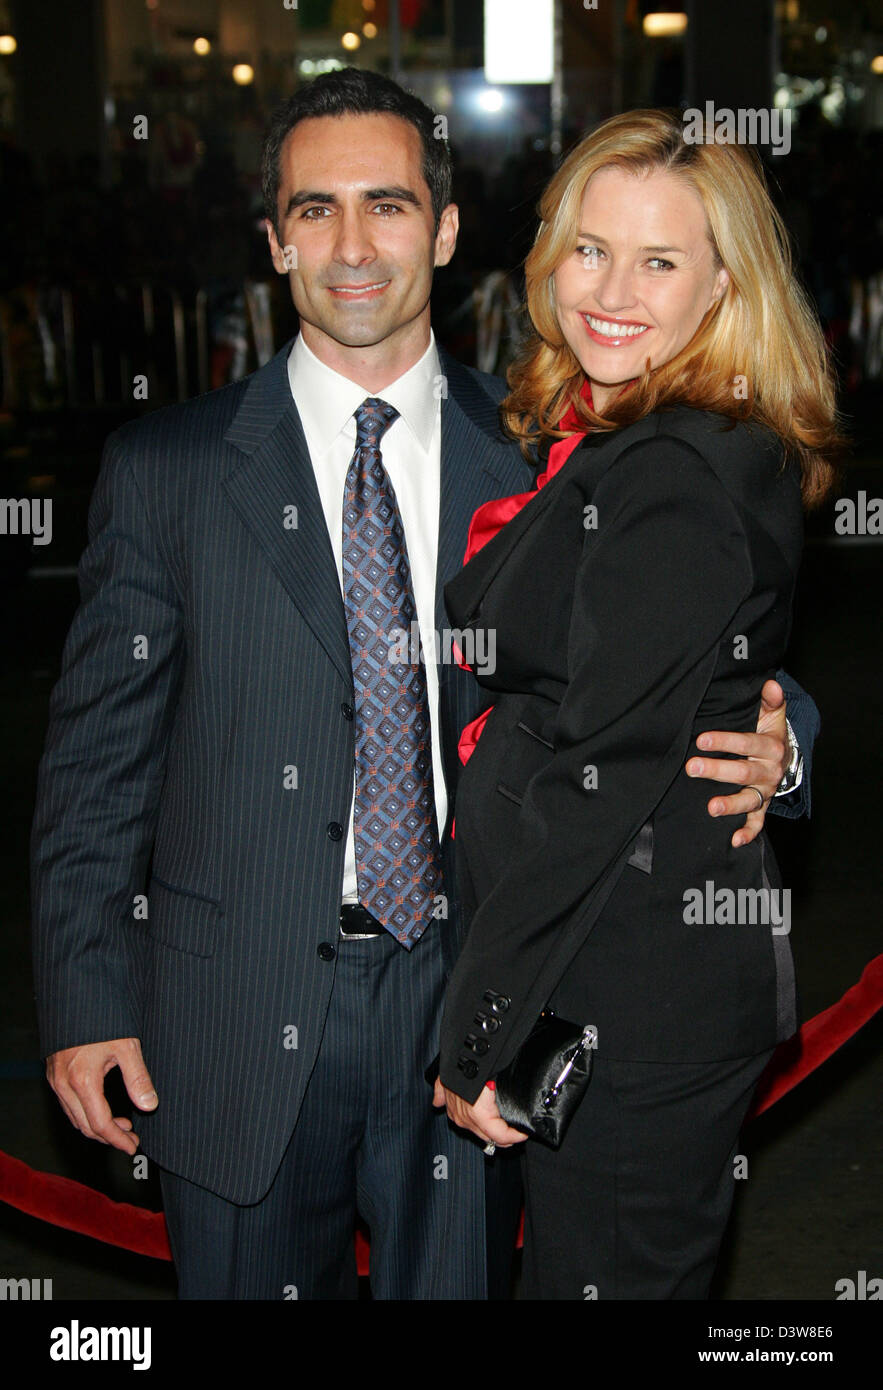 US actor Nestor Carbonell (L) and his wife Shannon Kenny (R) arrive to the premiere of his film 'Smokin' - Stock Image